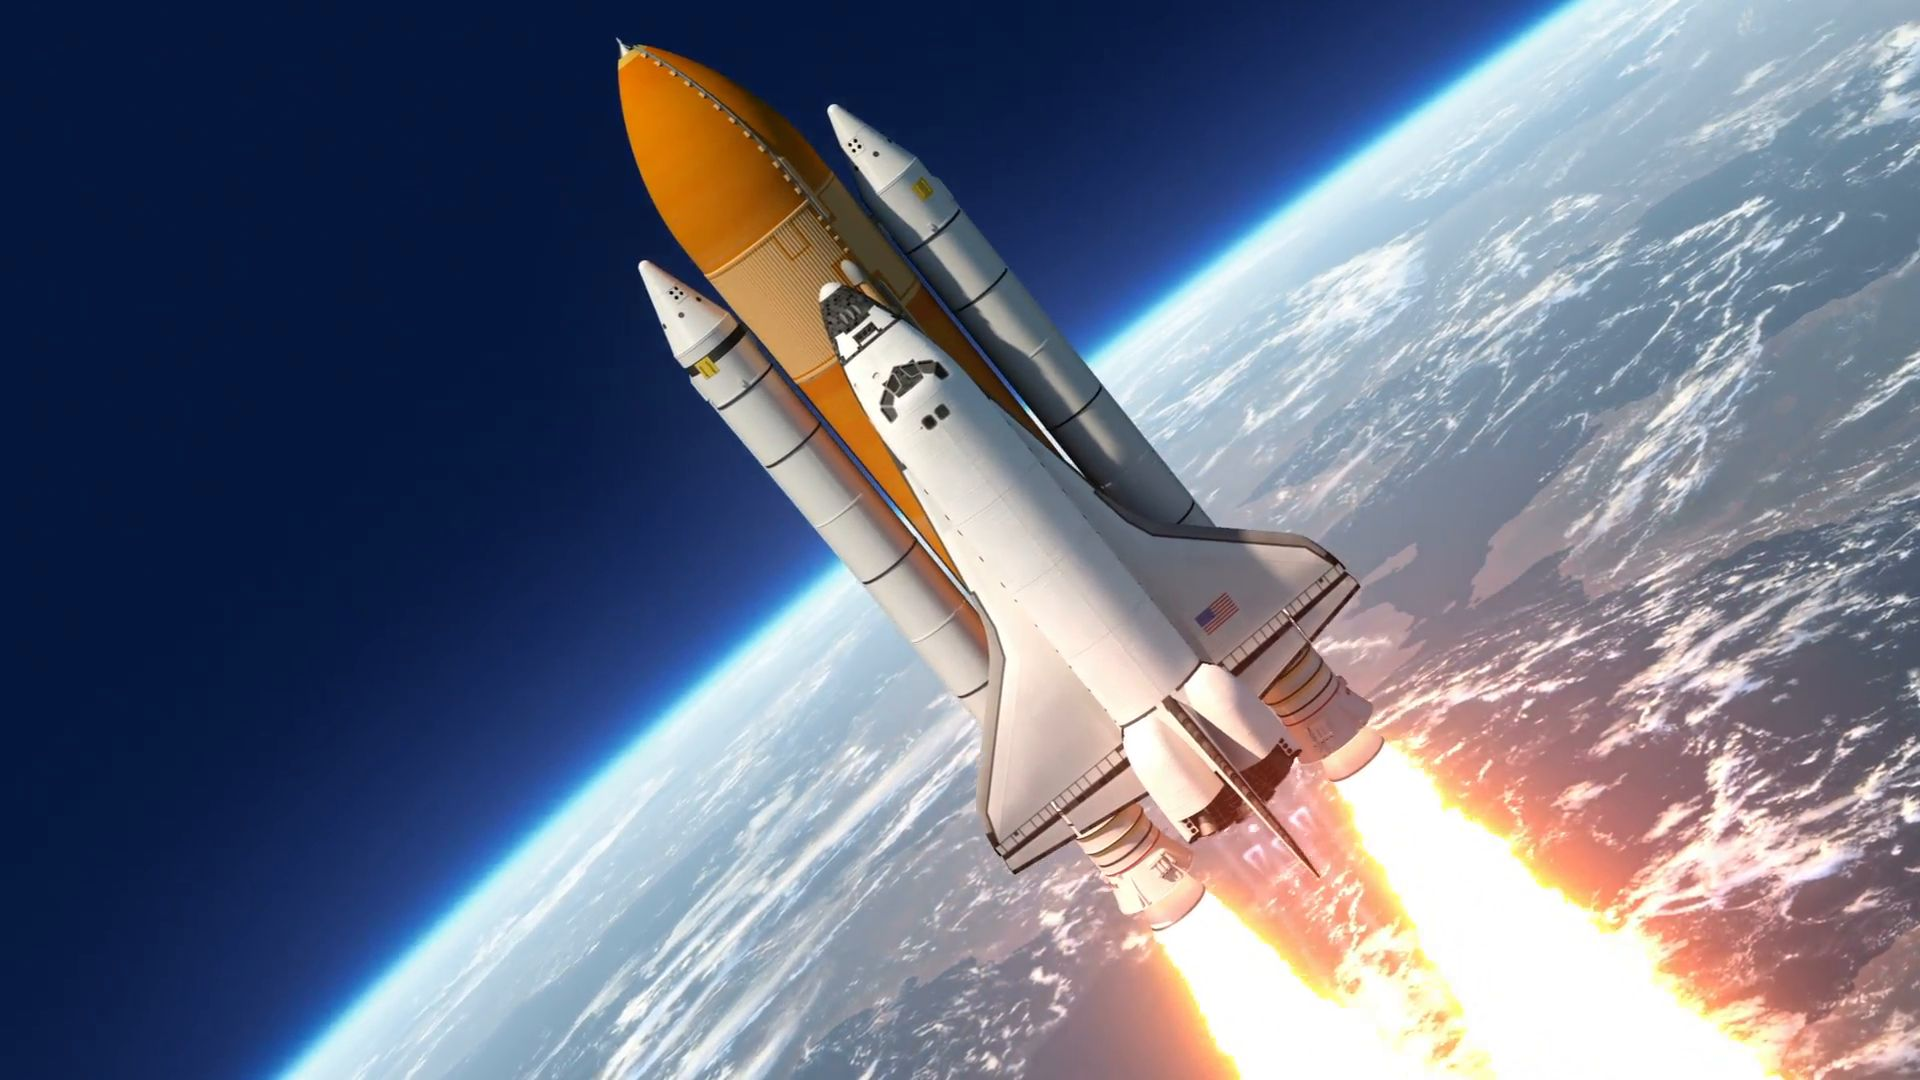 space-shuttle-launch-3d-animation_snm6vdbl__F0005.jpg